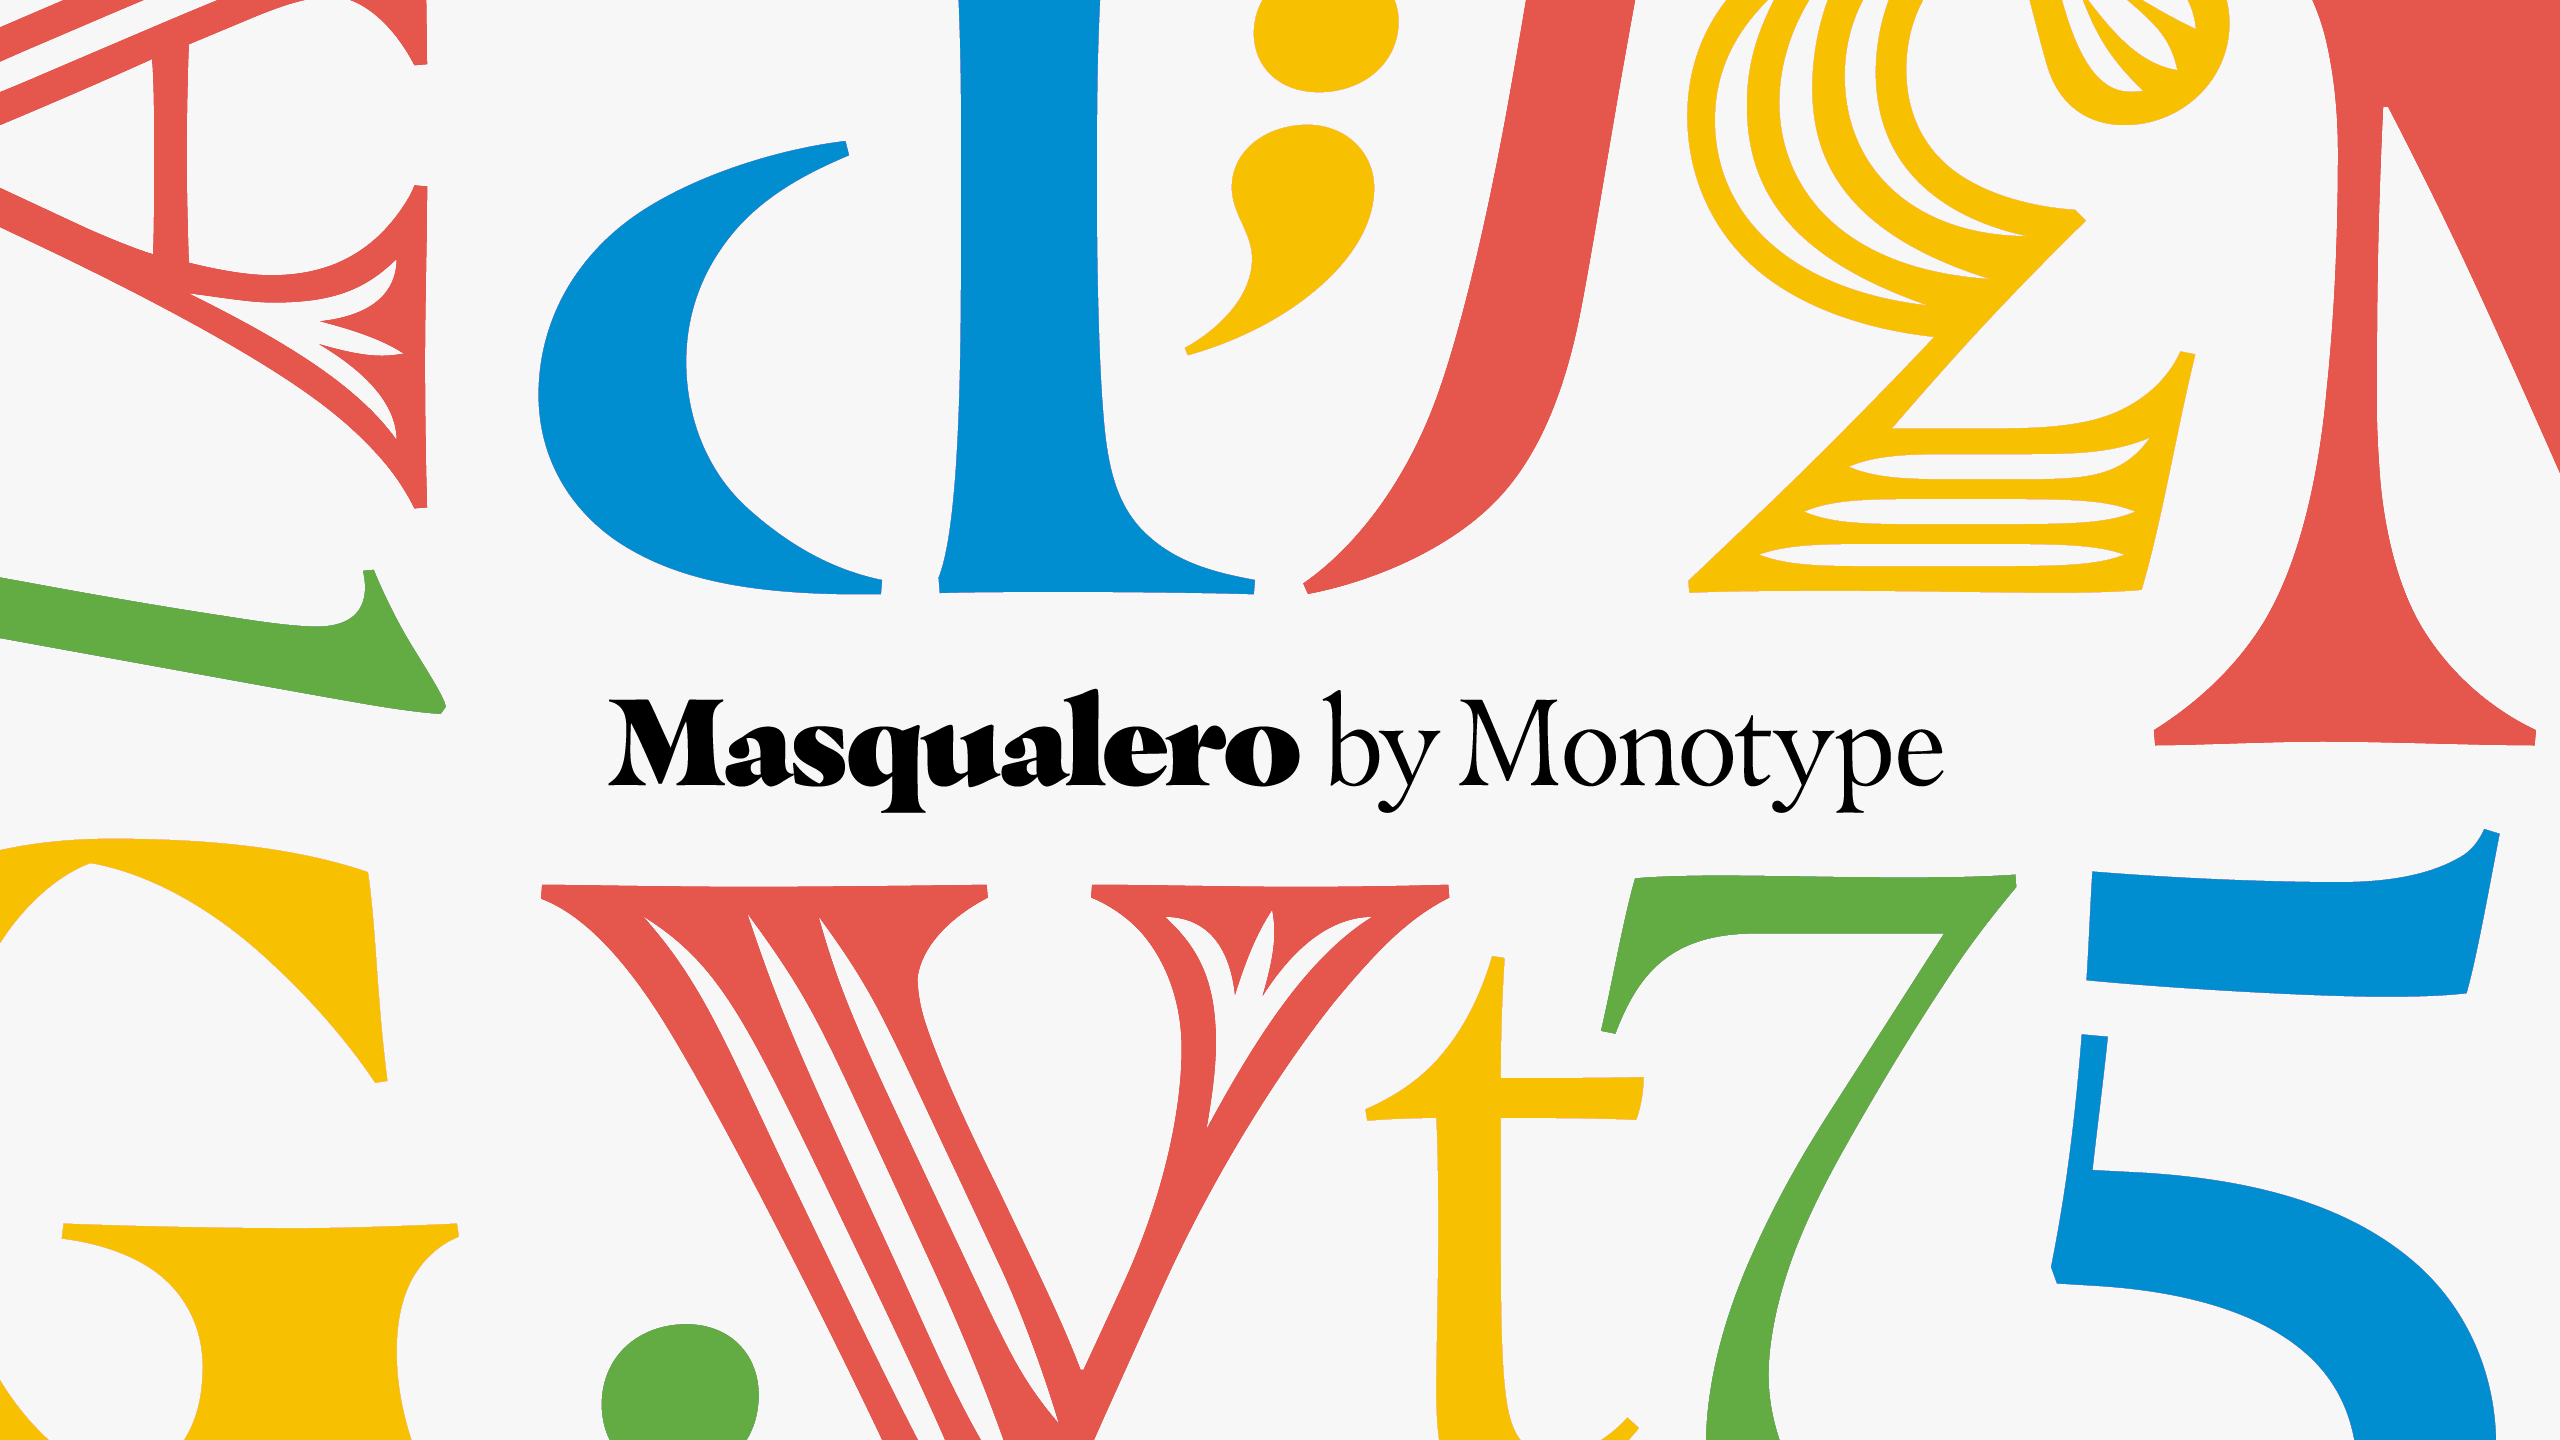 Masqualero by Monotype